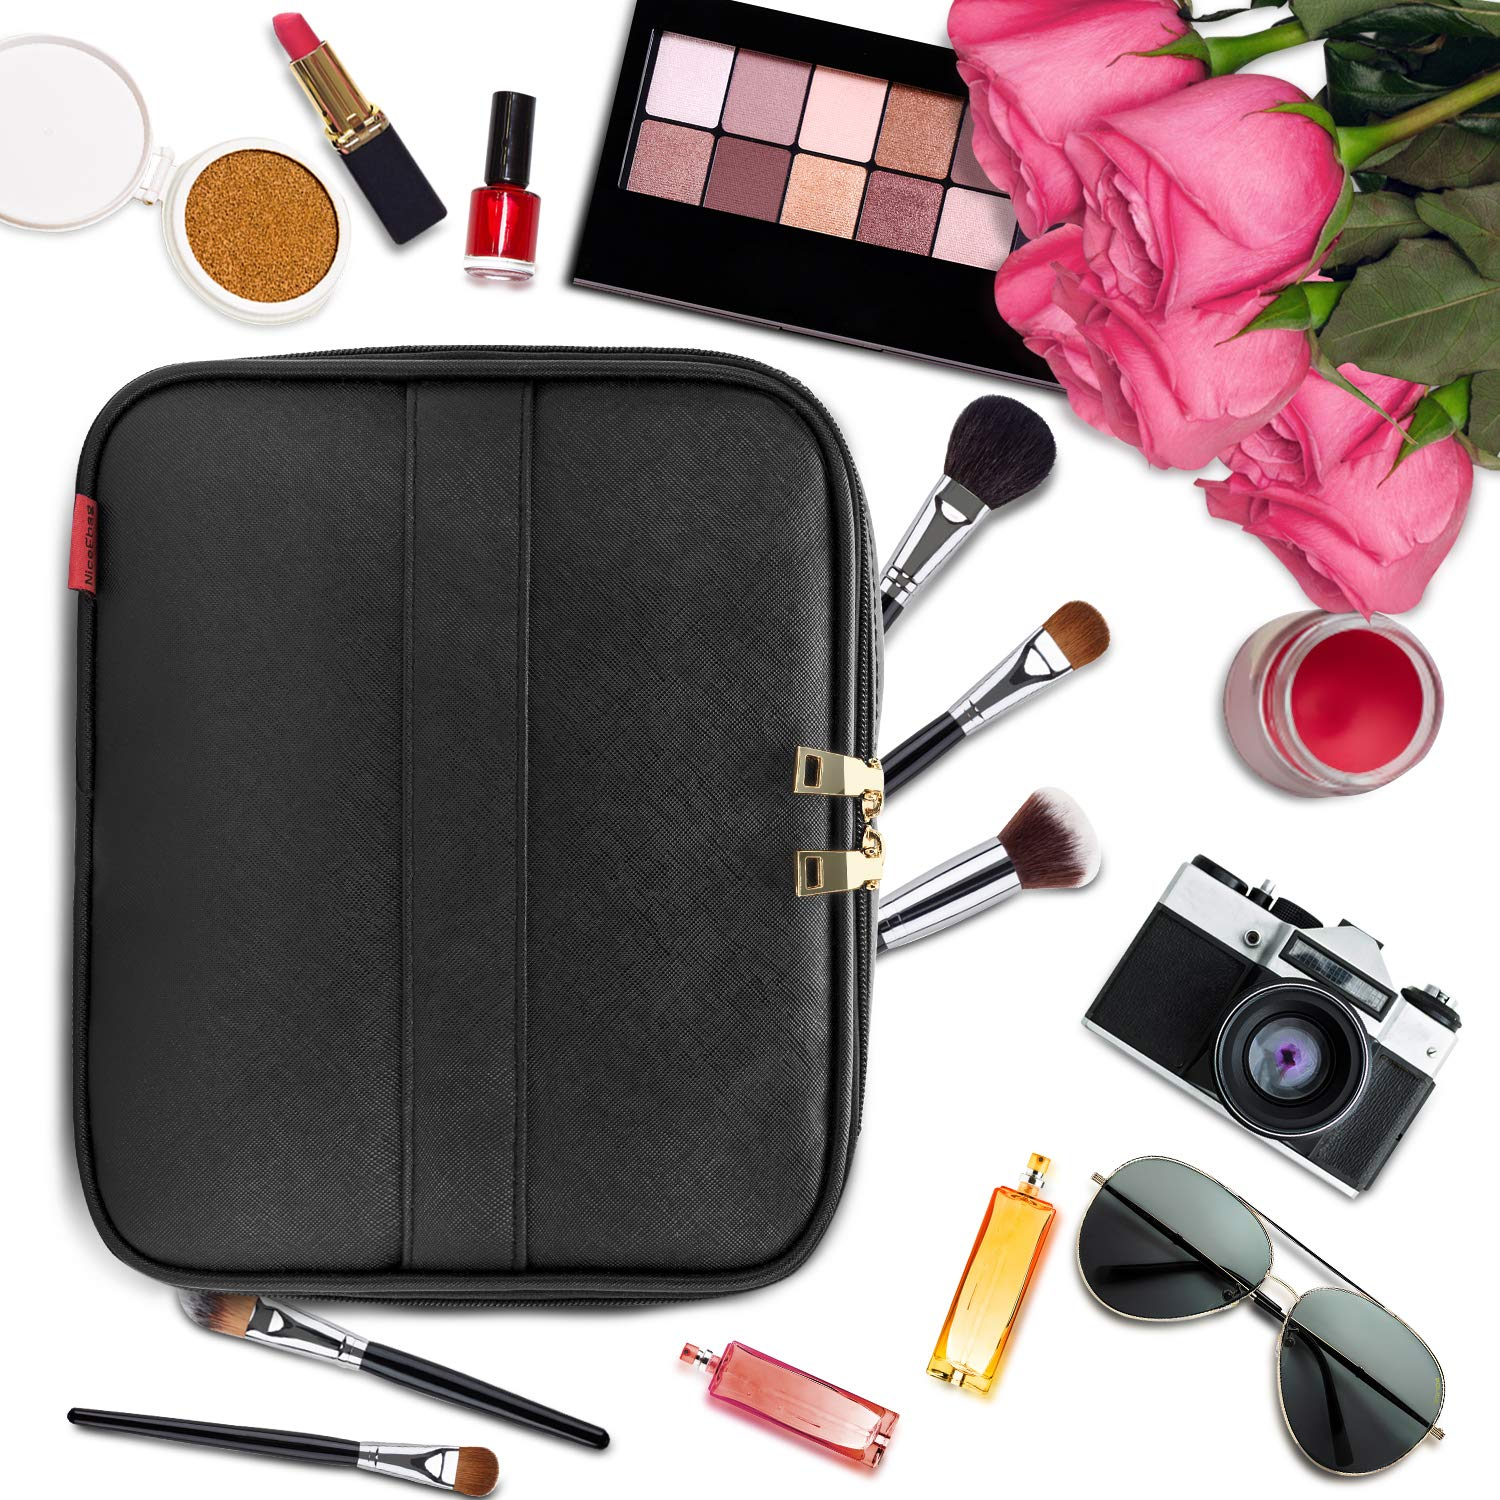 Makeup Bag NiceEbag Travel Cosmetic Bag for Women and Men Cute Makeup Case Leather Cosmetic Case with Adjustable Padded Dividers for Cosmetics Make Up Tools Toiletry Jewelry,Black by NiceEbag (Image #4)